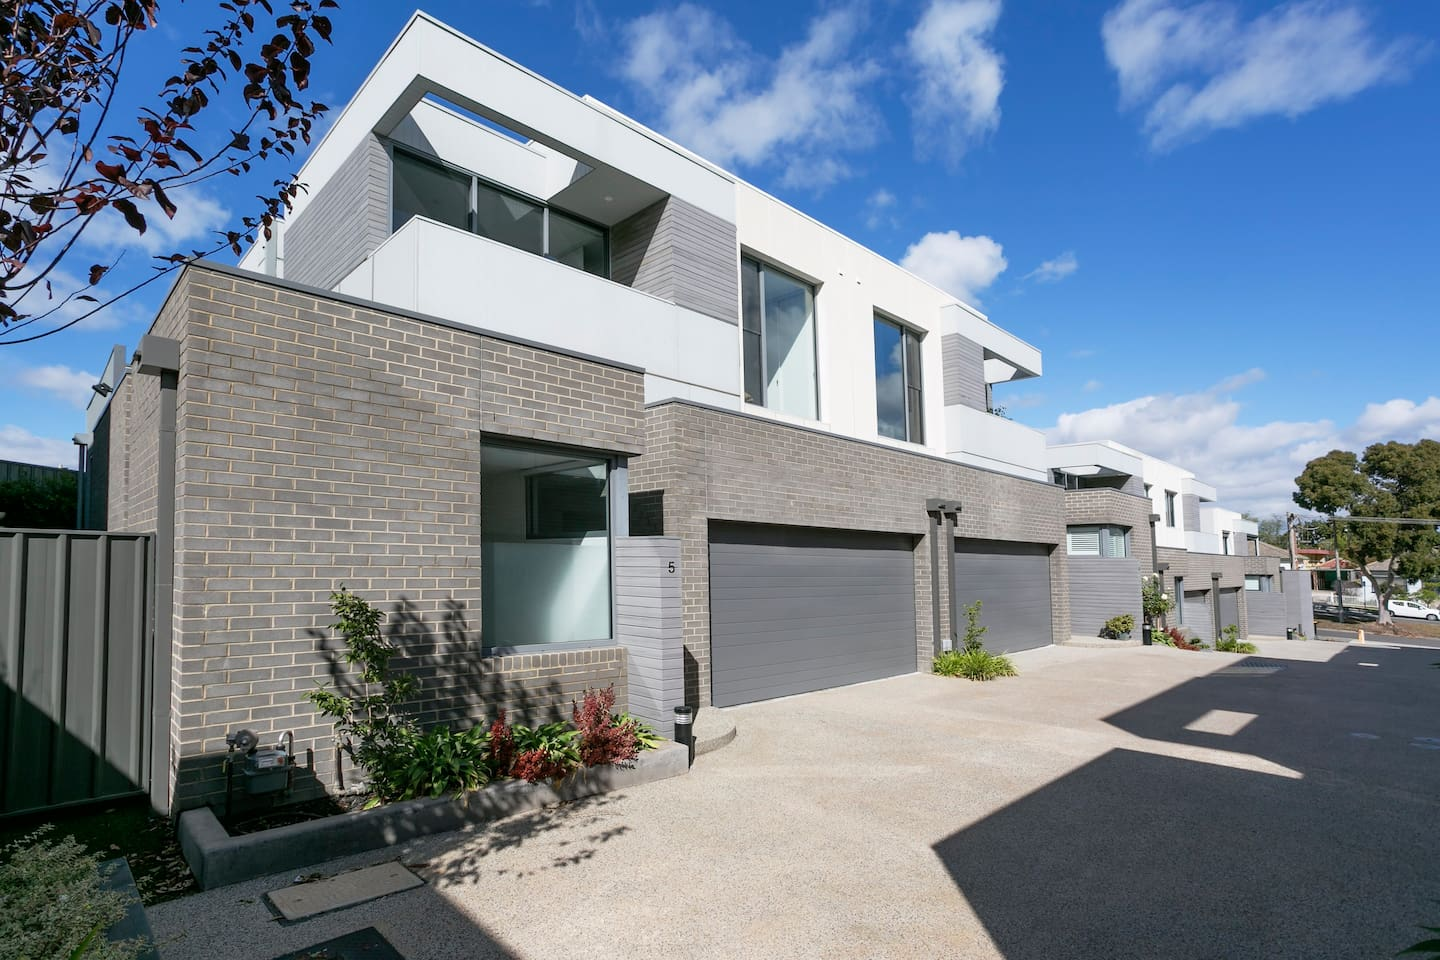 A modern town house at the top of an elevated drive way , safe and secure  with double garage